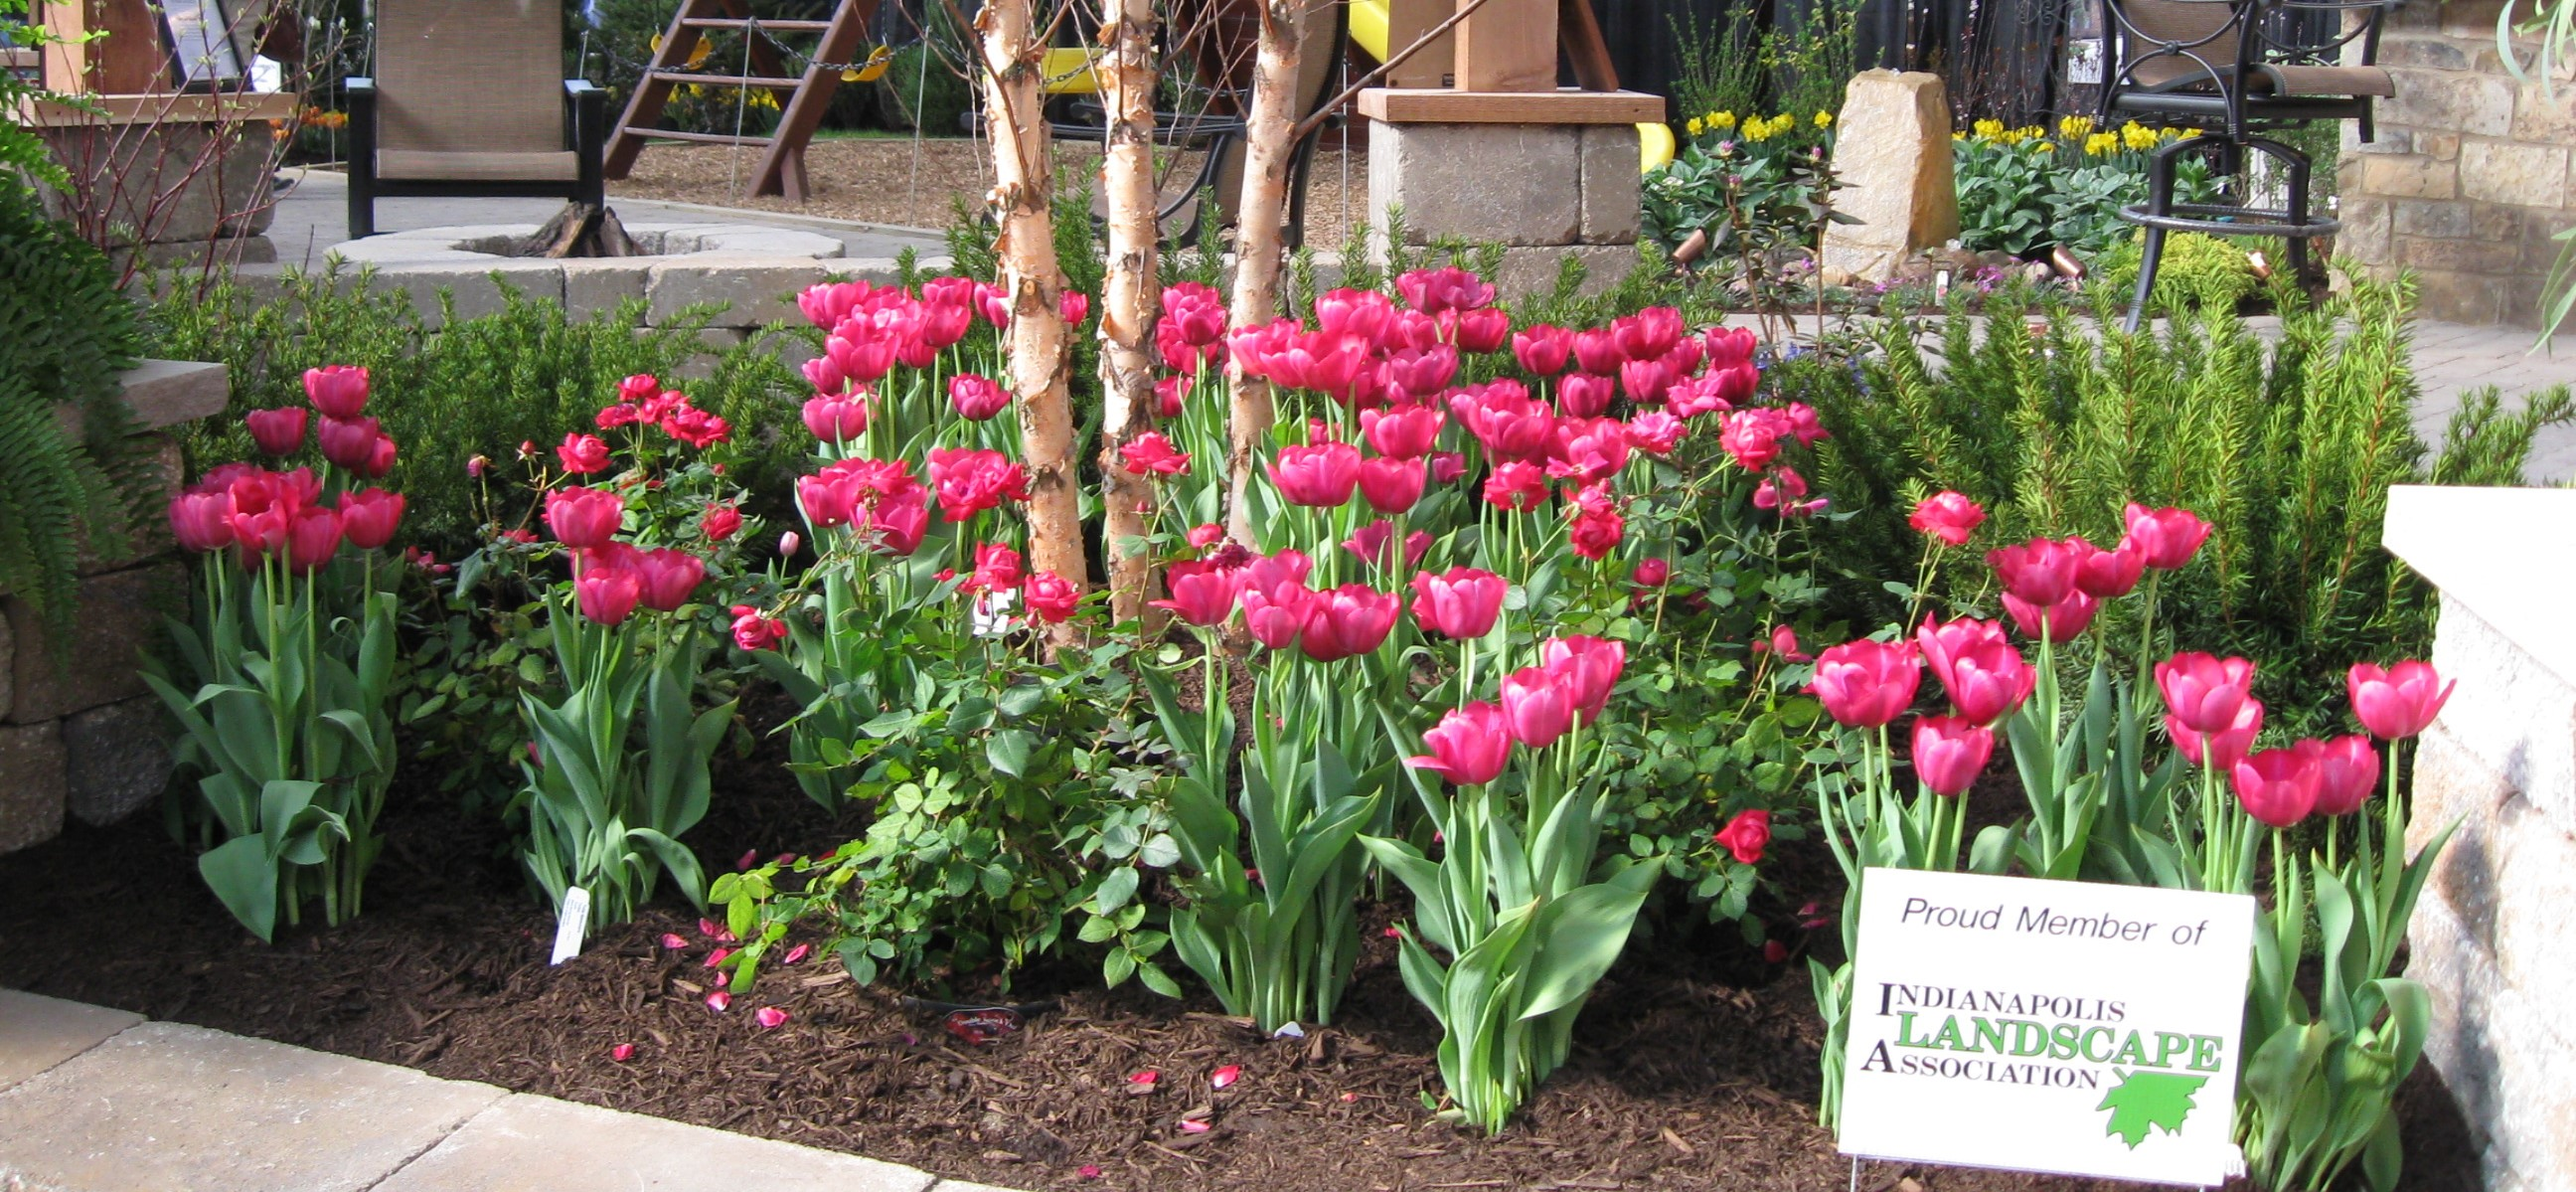 give our regards to the indiana flower & patio show « midlife crisis